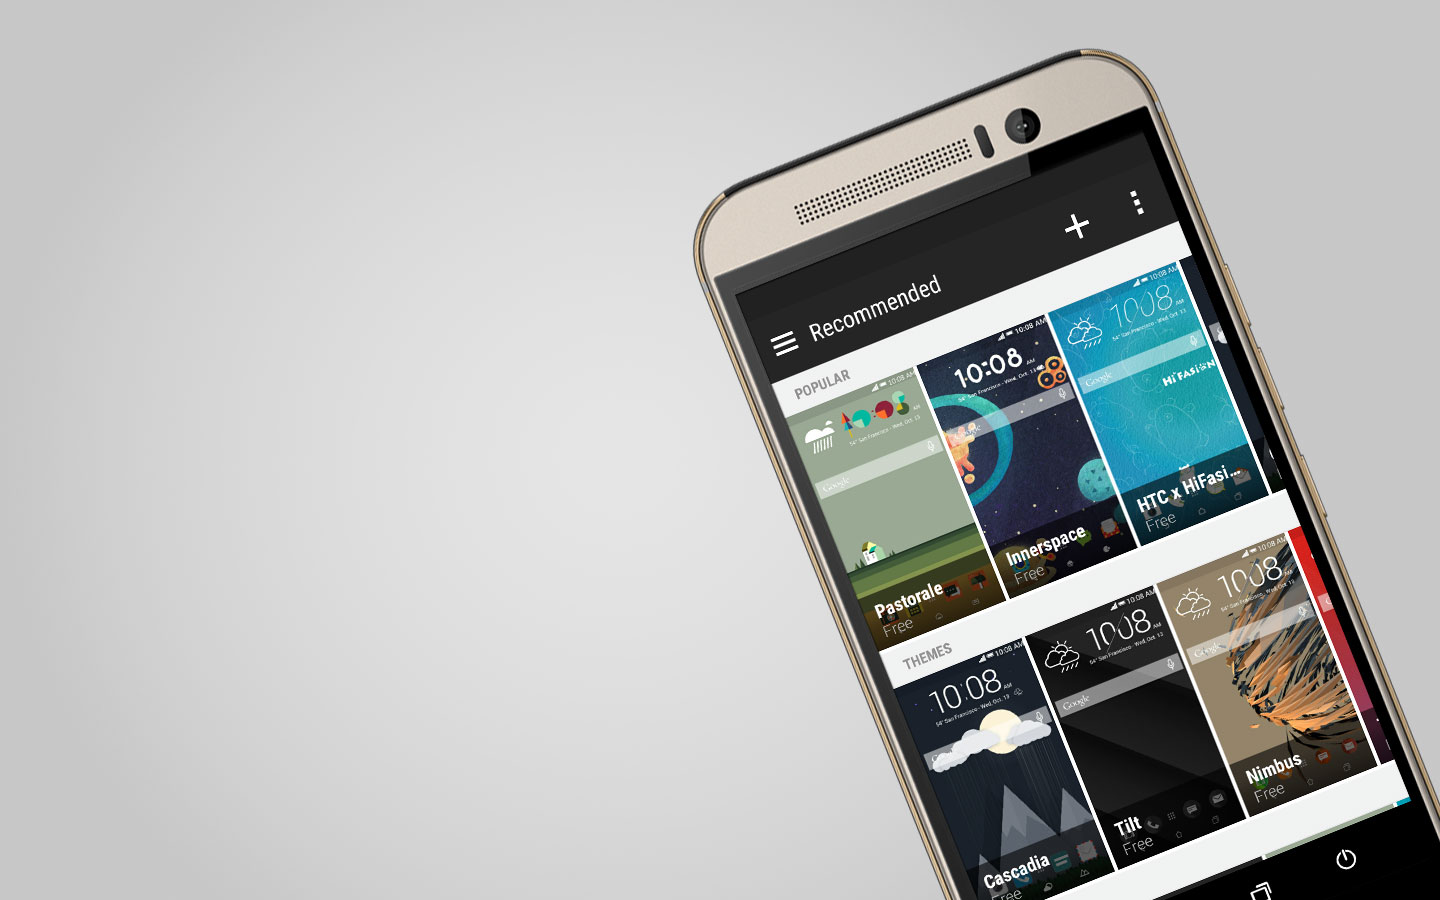 [image] HTC One M9 Best Price in Kenya